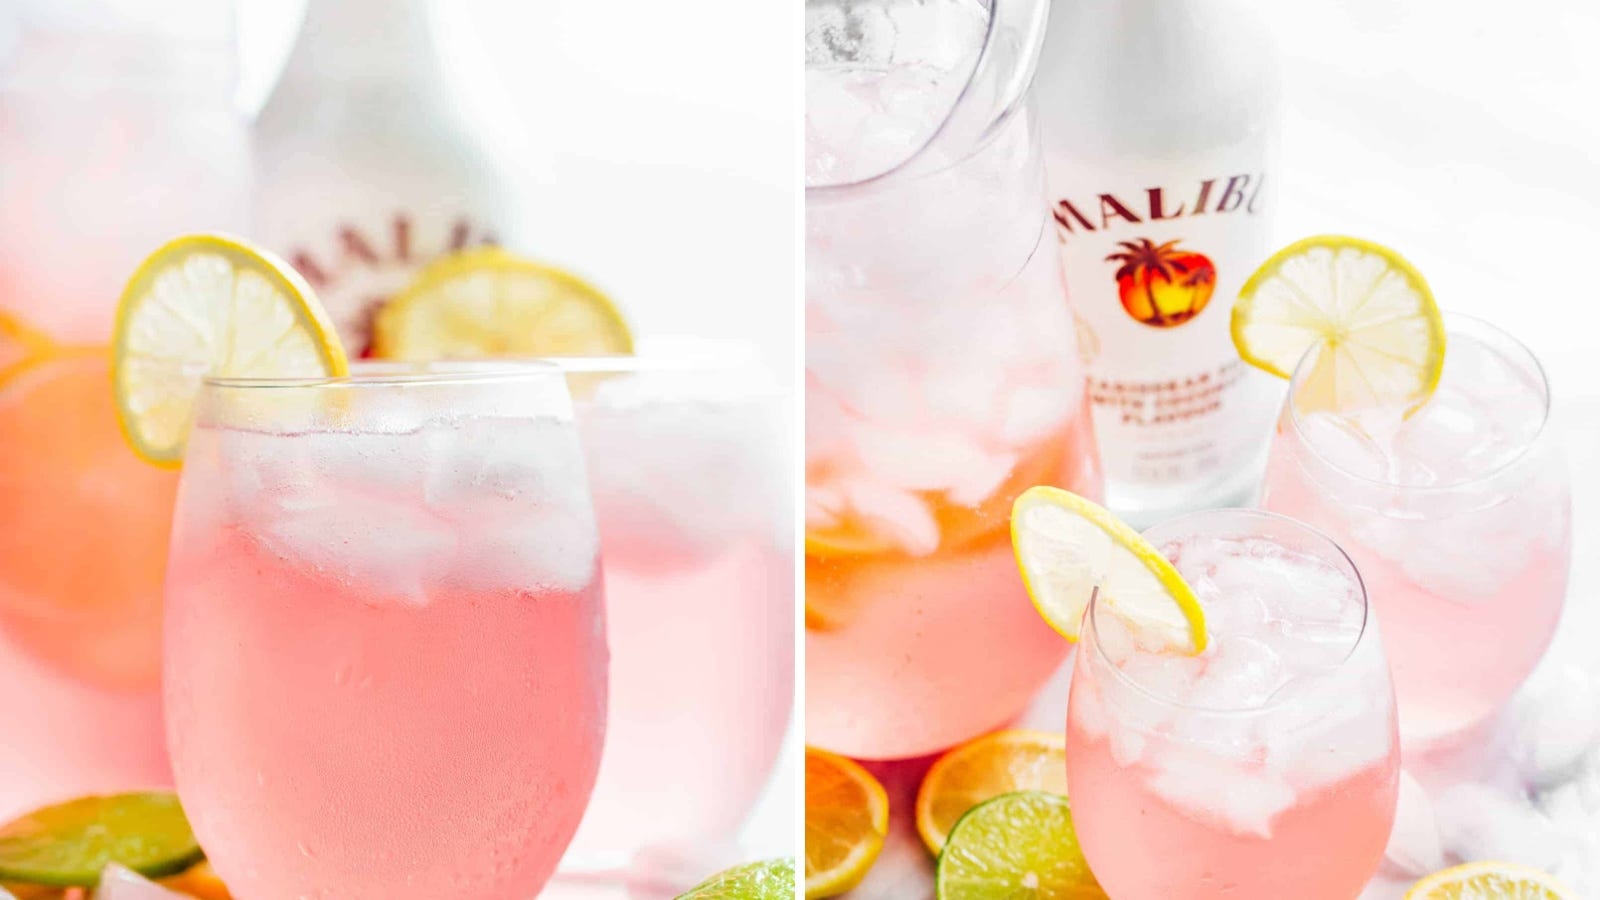 Two images of pink vodka lemonade with a bottle of Malibu rum in the background.